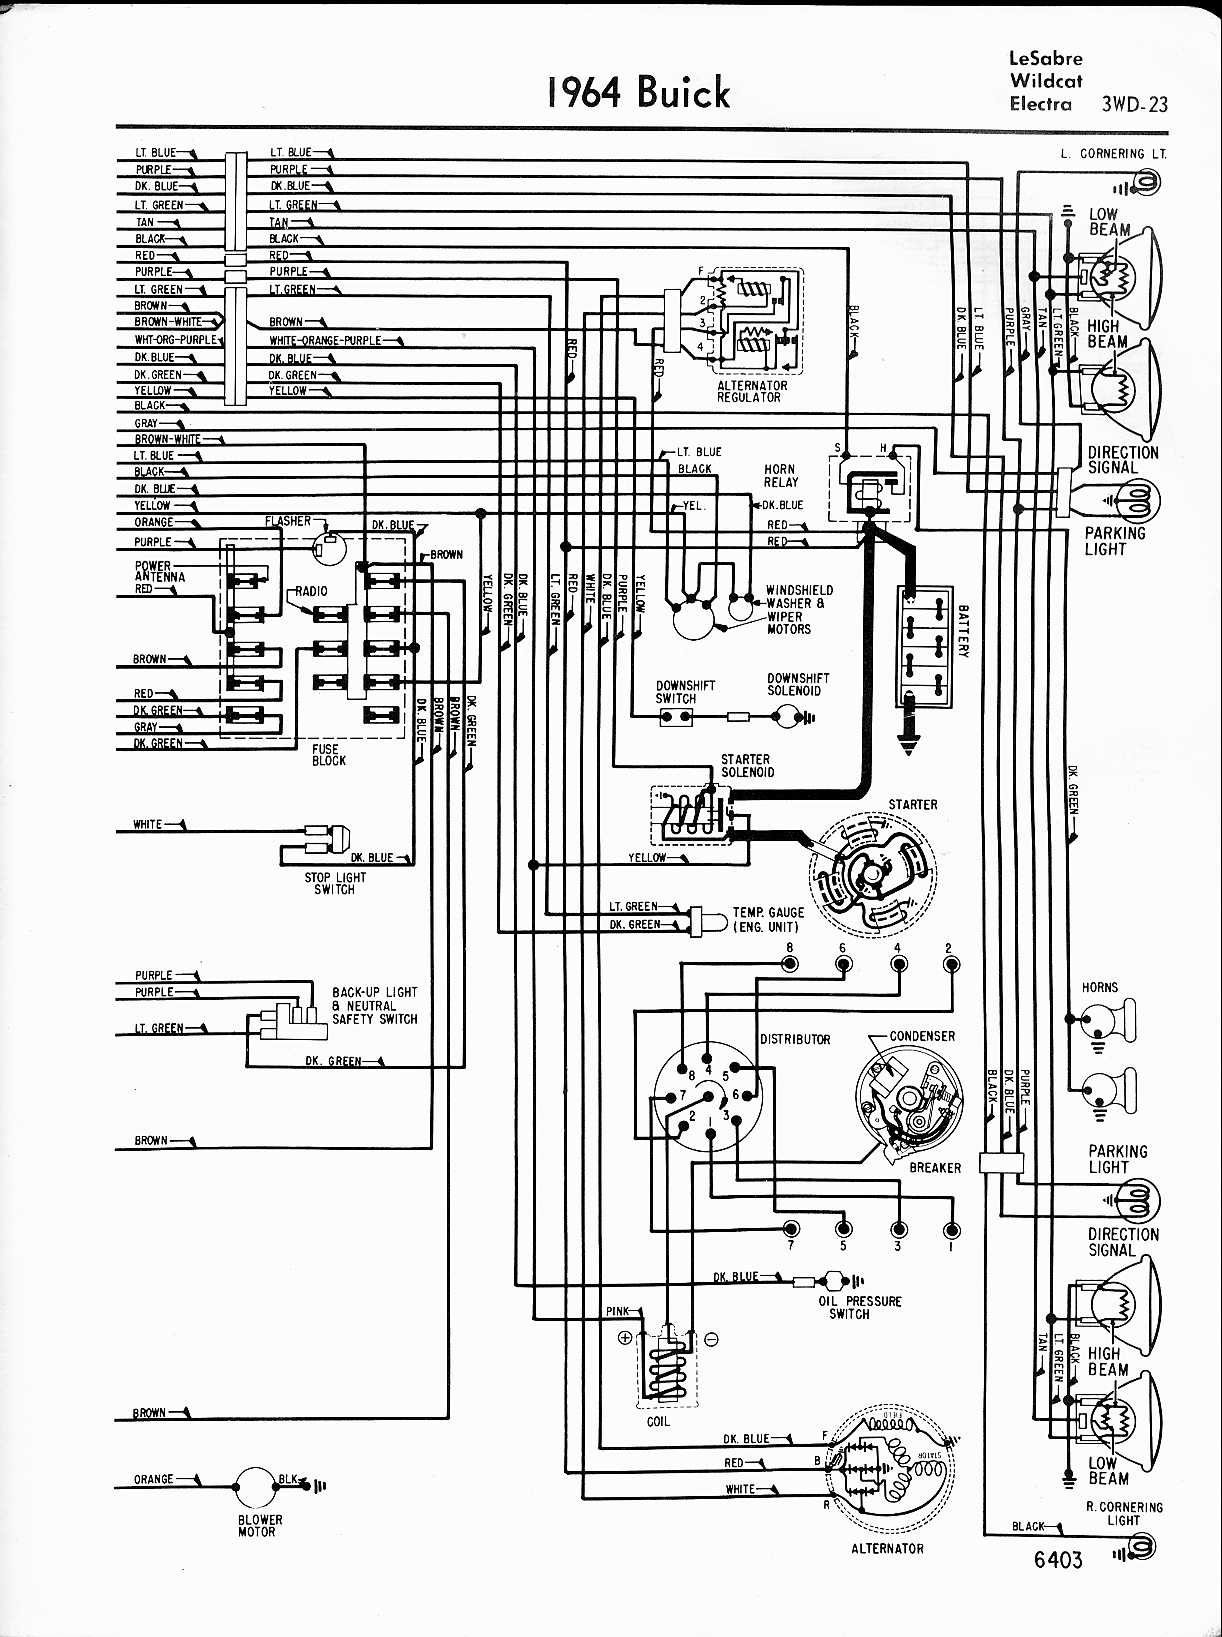 1985 Buick Regal Radio Wiring Diagram - Residential Electrical Symbols •